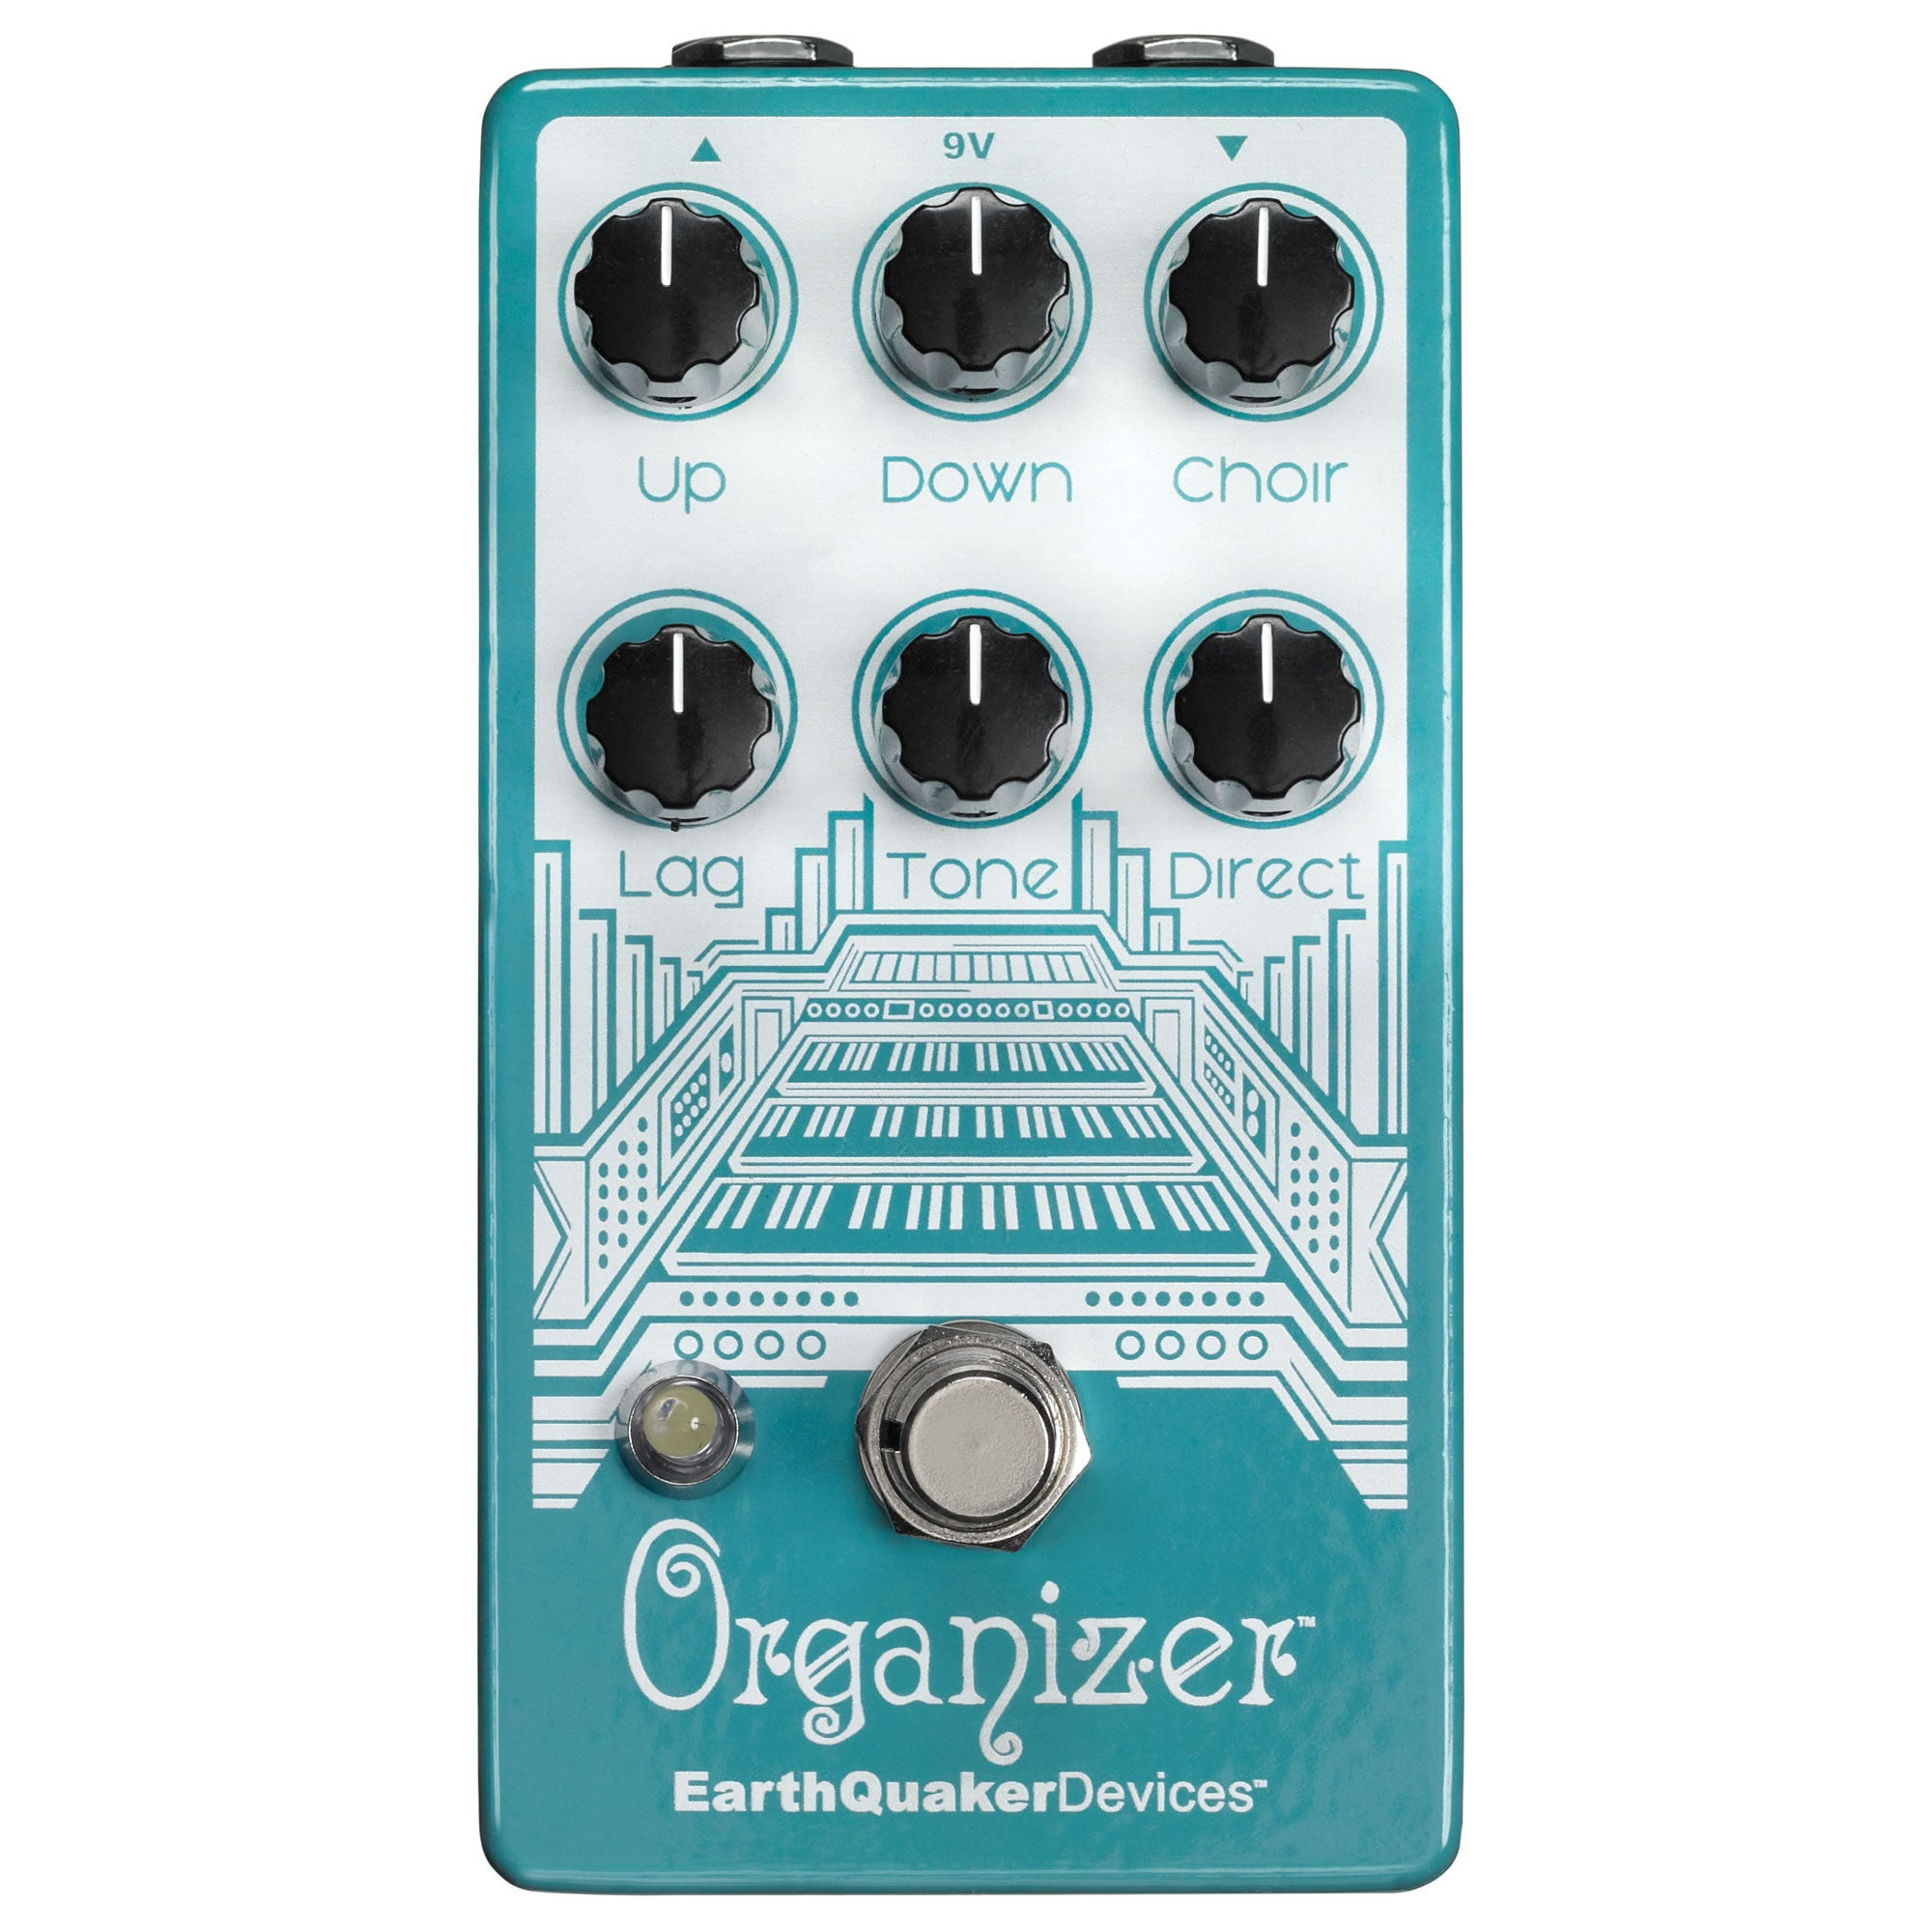 Earthquaker Devices Organizer Polyphonic Organ Emulator - V2